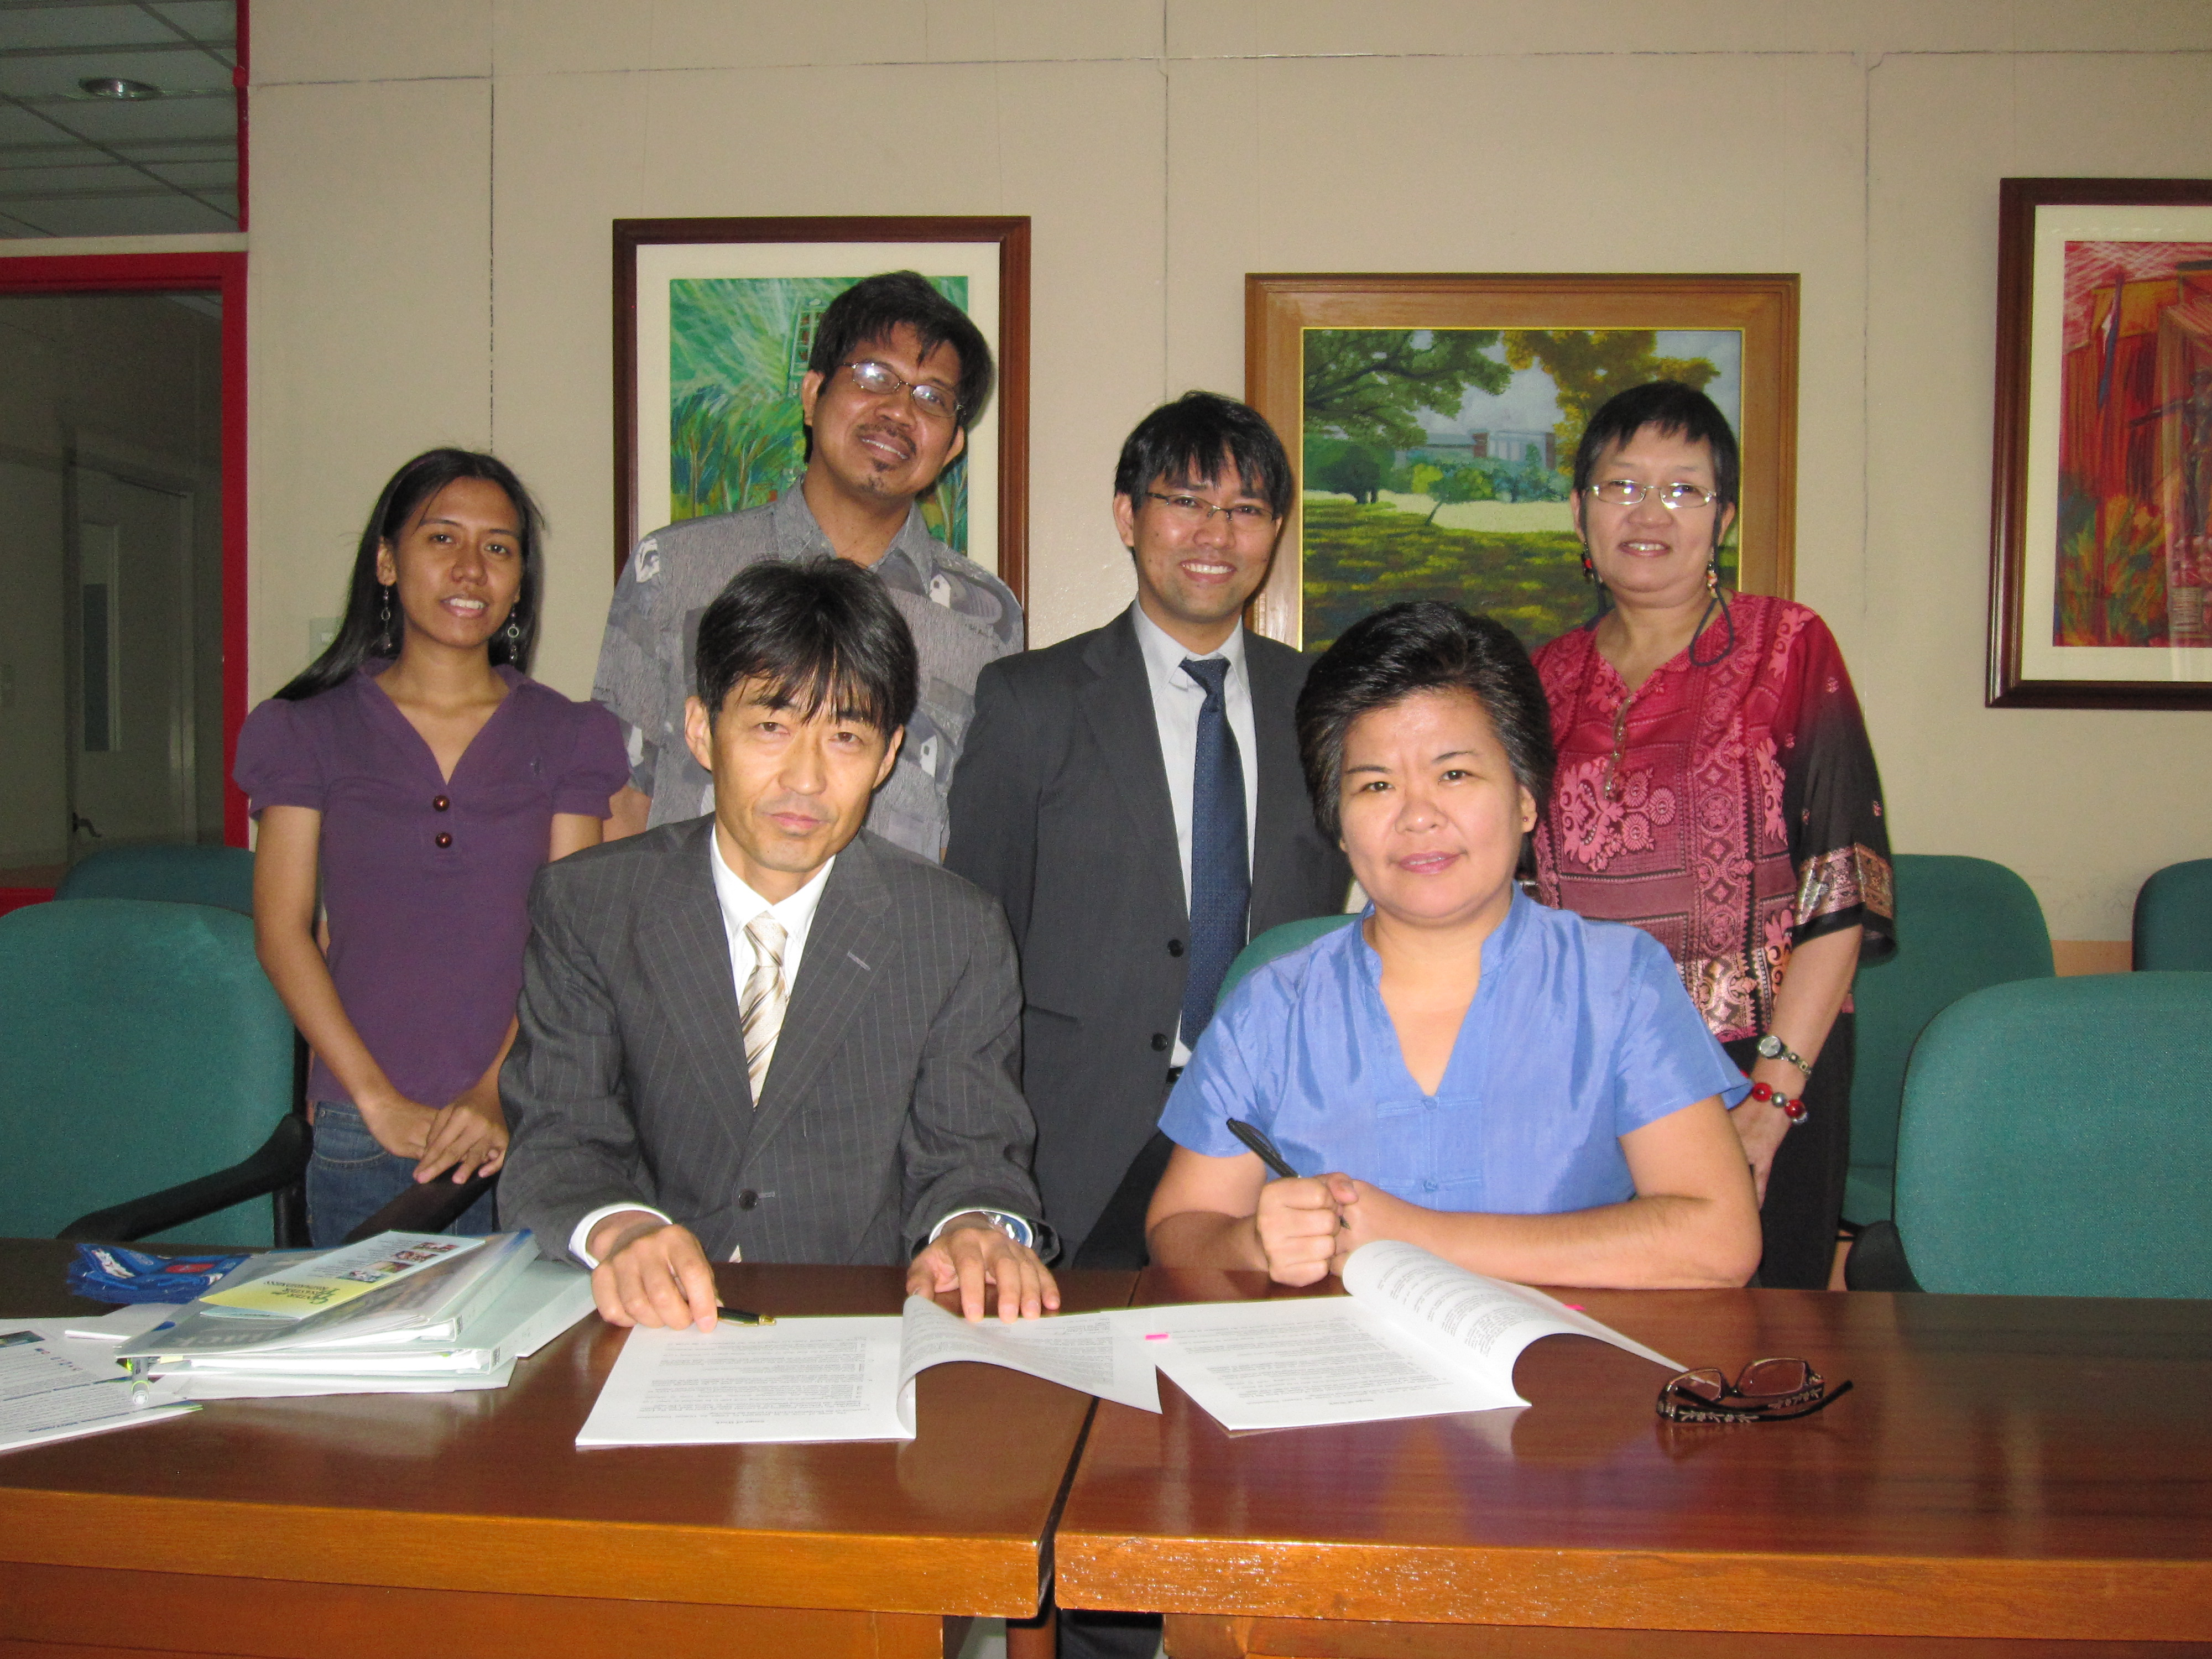 https://www.adrc.asia/adrcreport_e/items/contract%20signing.JPG